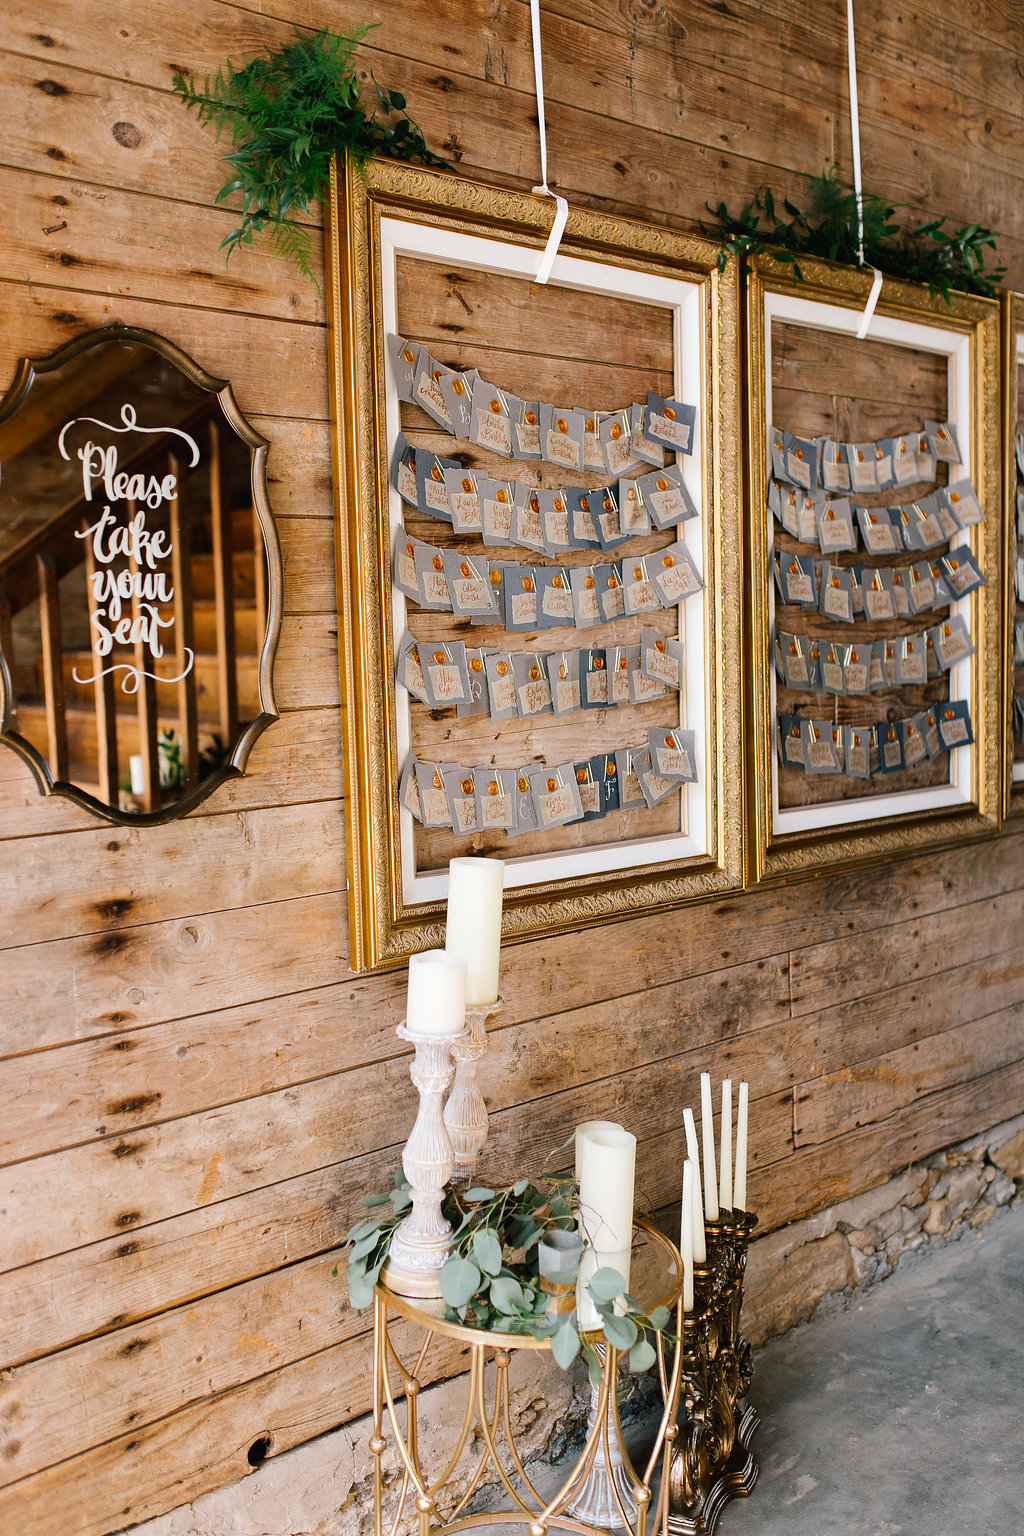 Jade and Seth Bloom Lake Barn wedding | Allison Hopperstad Photography | A Vintage Touch Weddings planning nad design | Day of Coordinating by Sixpence Events 48.JPG